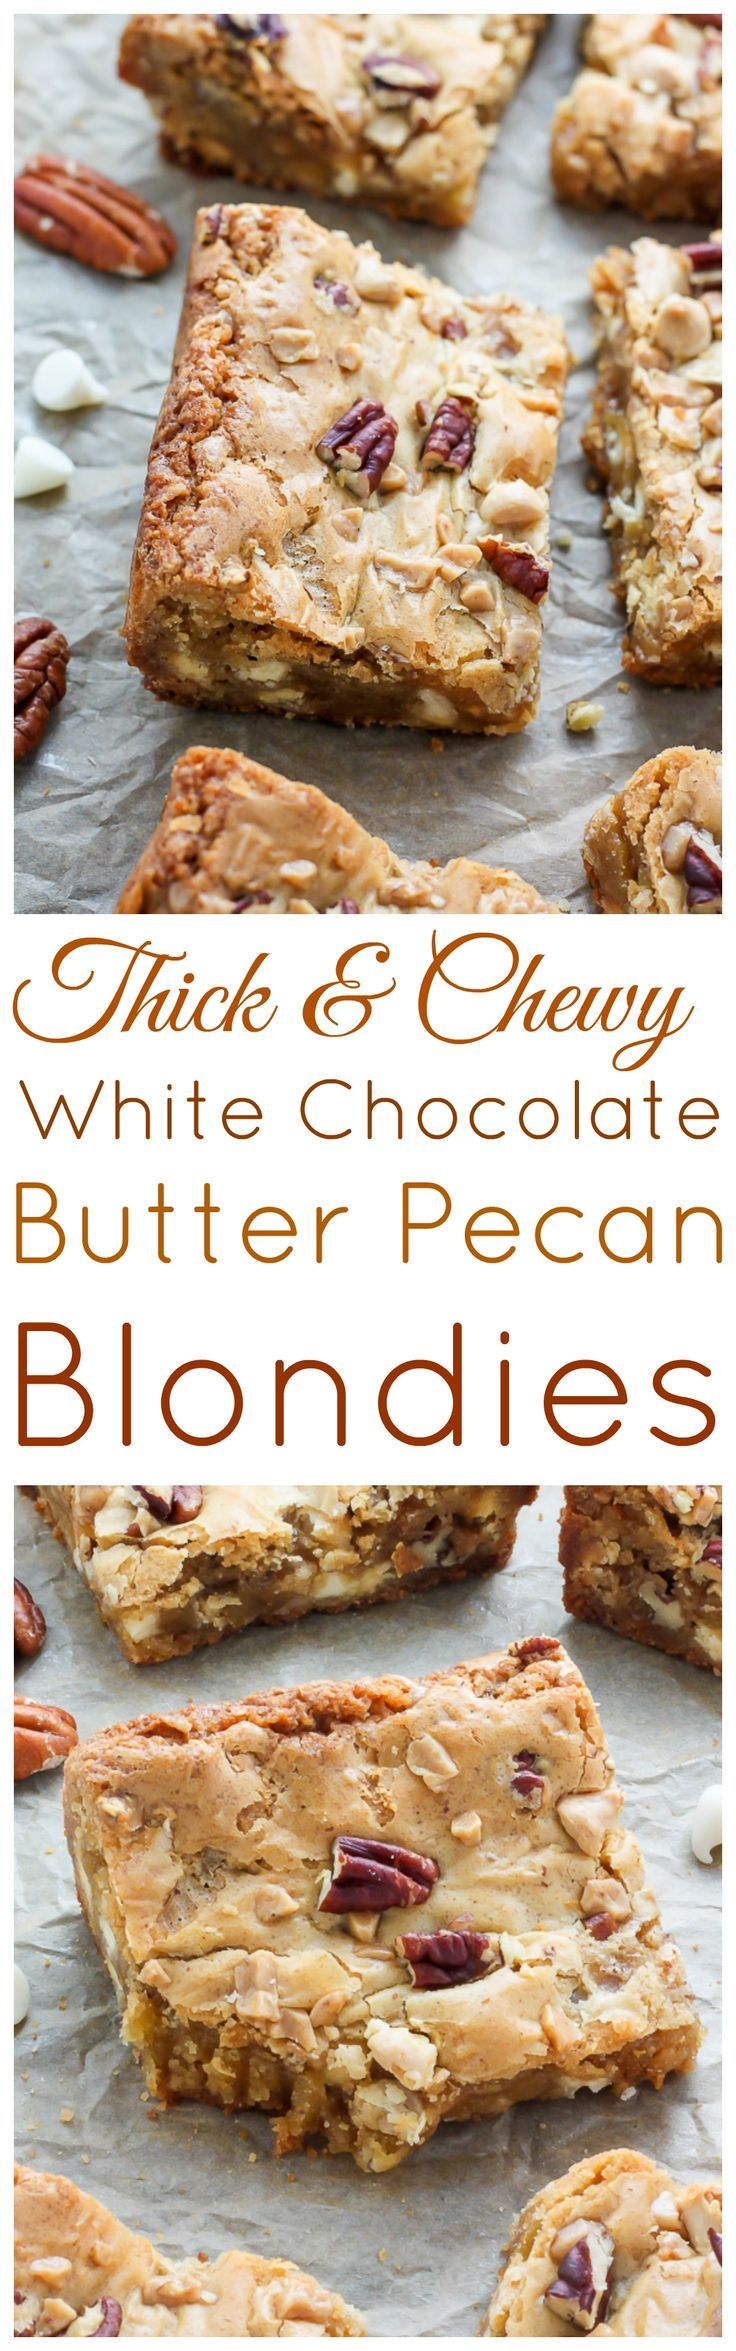 White Chocolate Butter Pecan Blondies - thick, chewy, and ready in 20 minutes! YES.